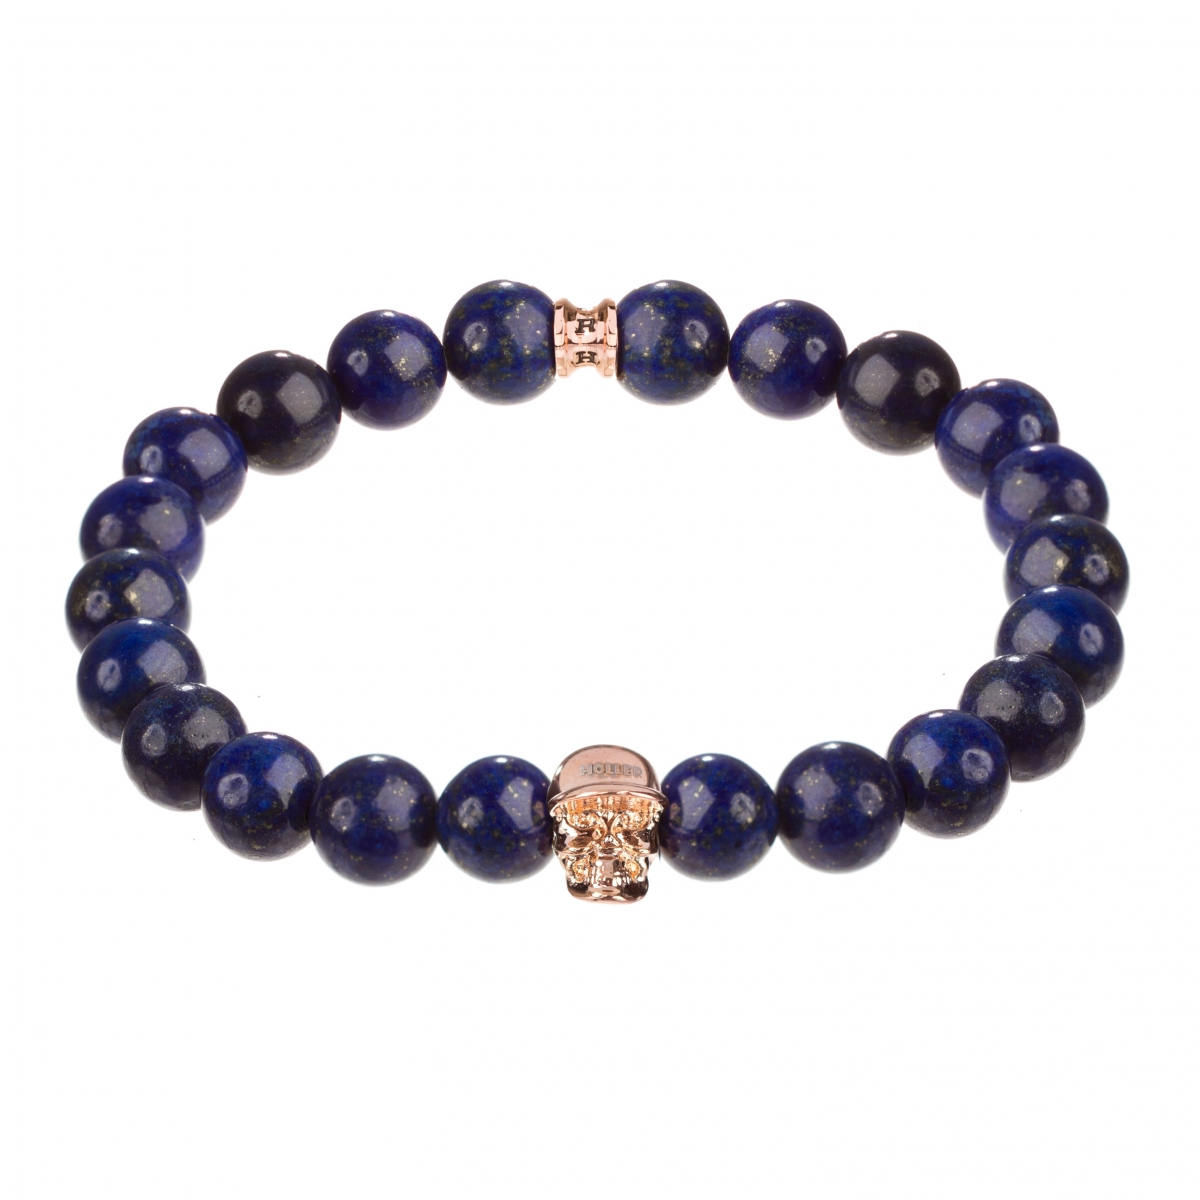 Jefferson Rose Gold Polished Skull / 10mm Blue Gold Dumortierite Natural Stone Bracelet